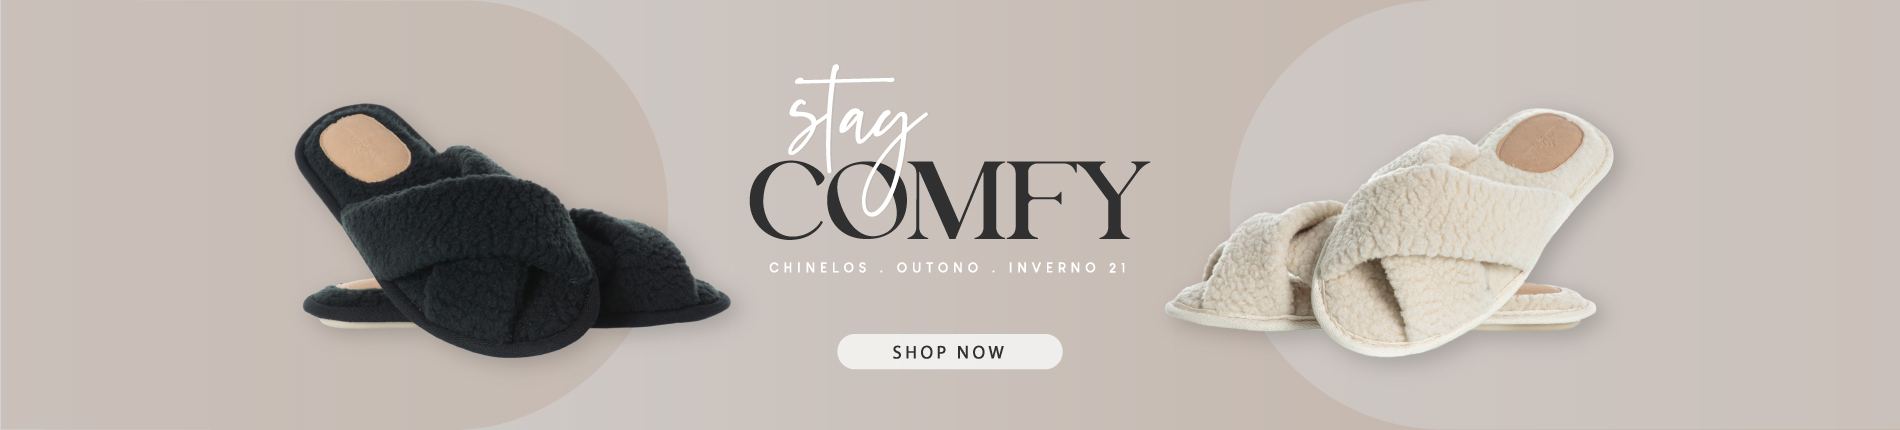 STAY COMFY CHINELOS